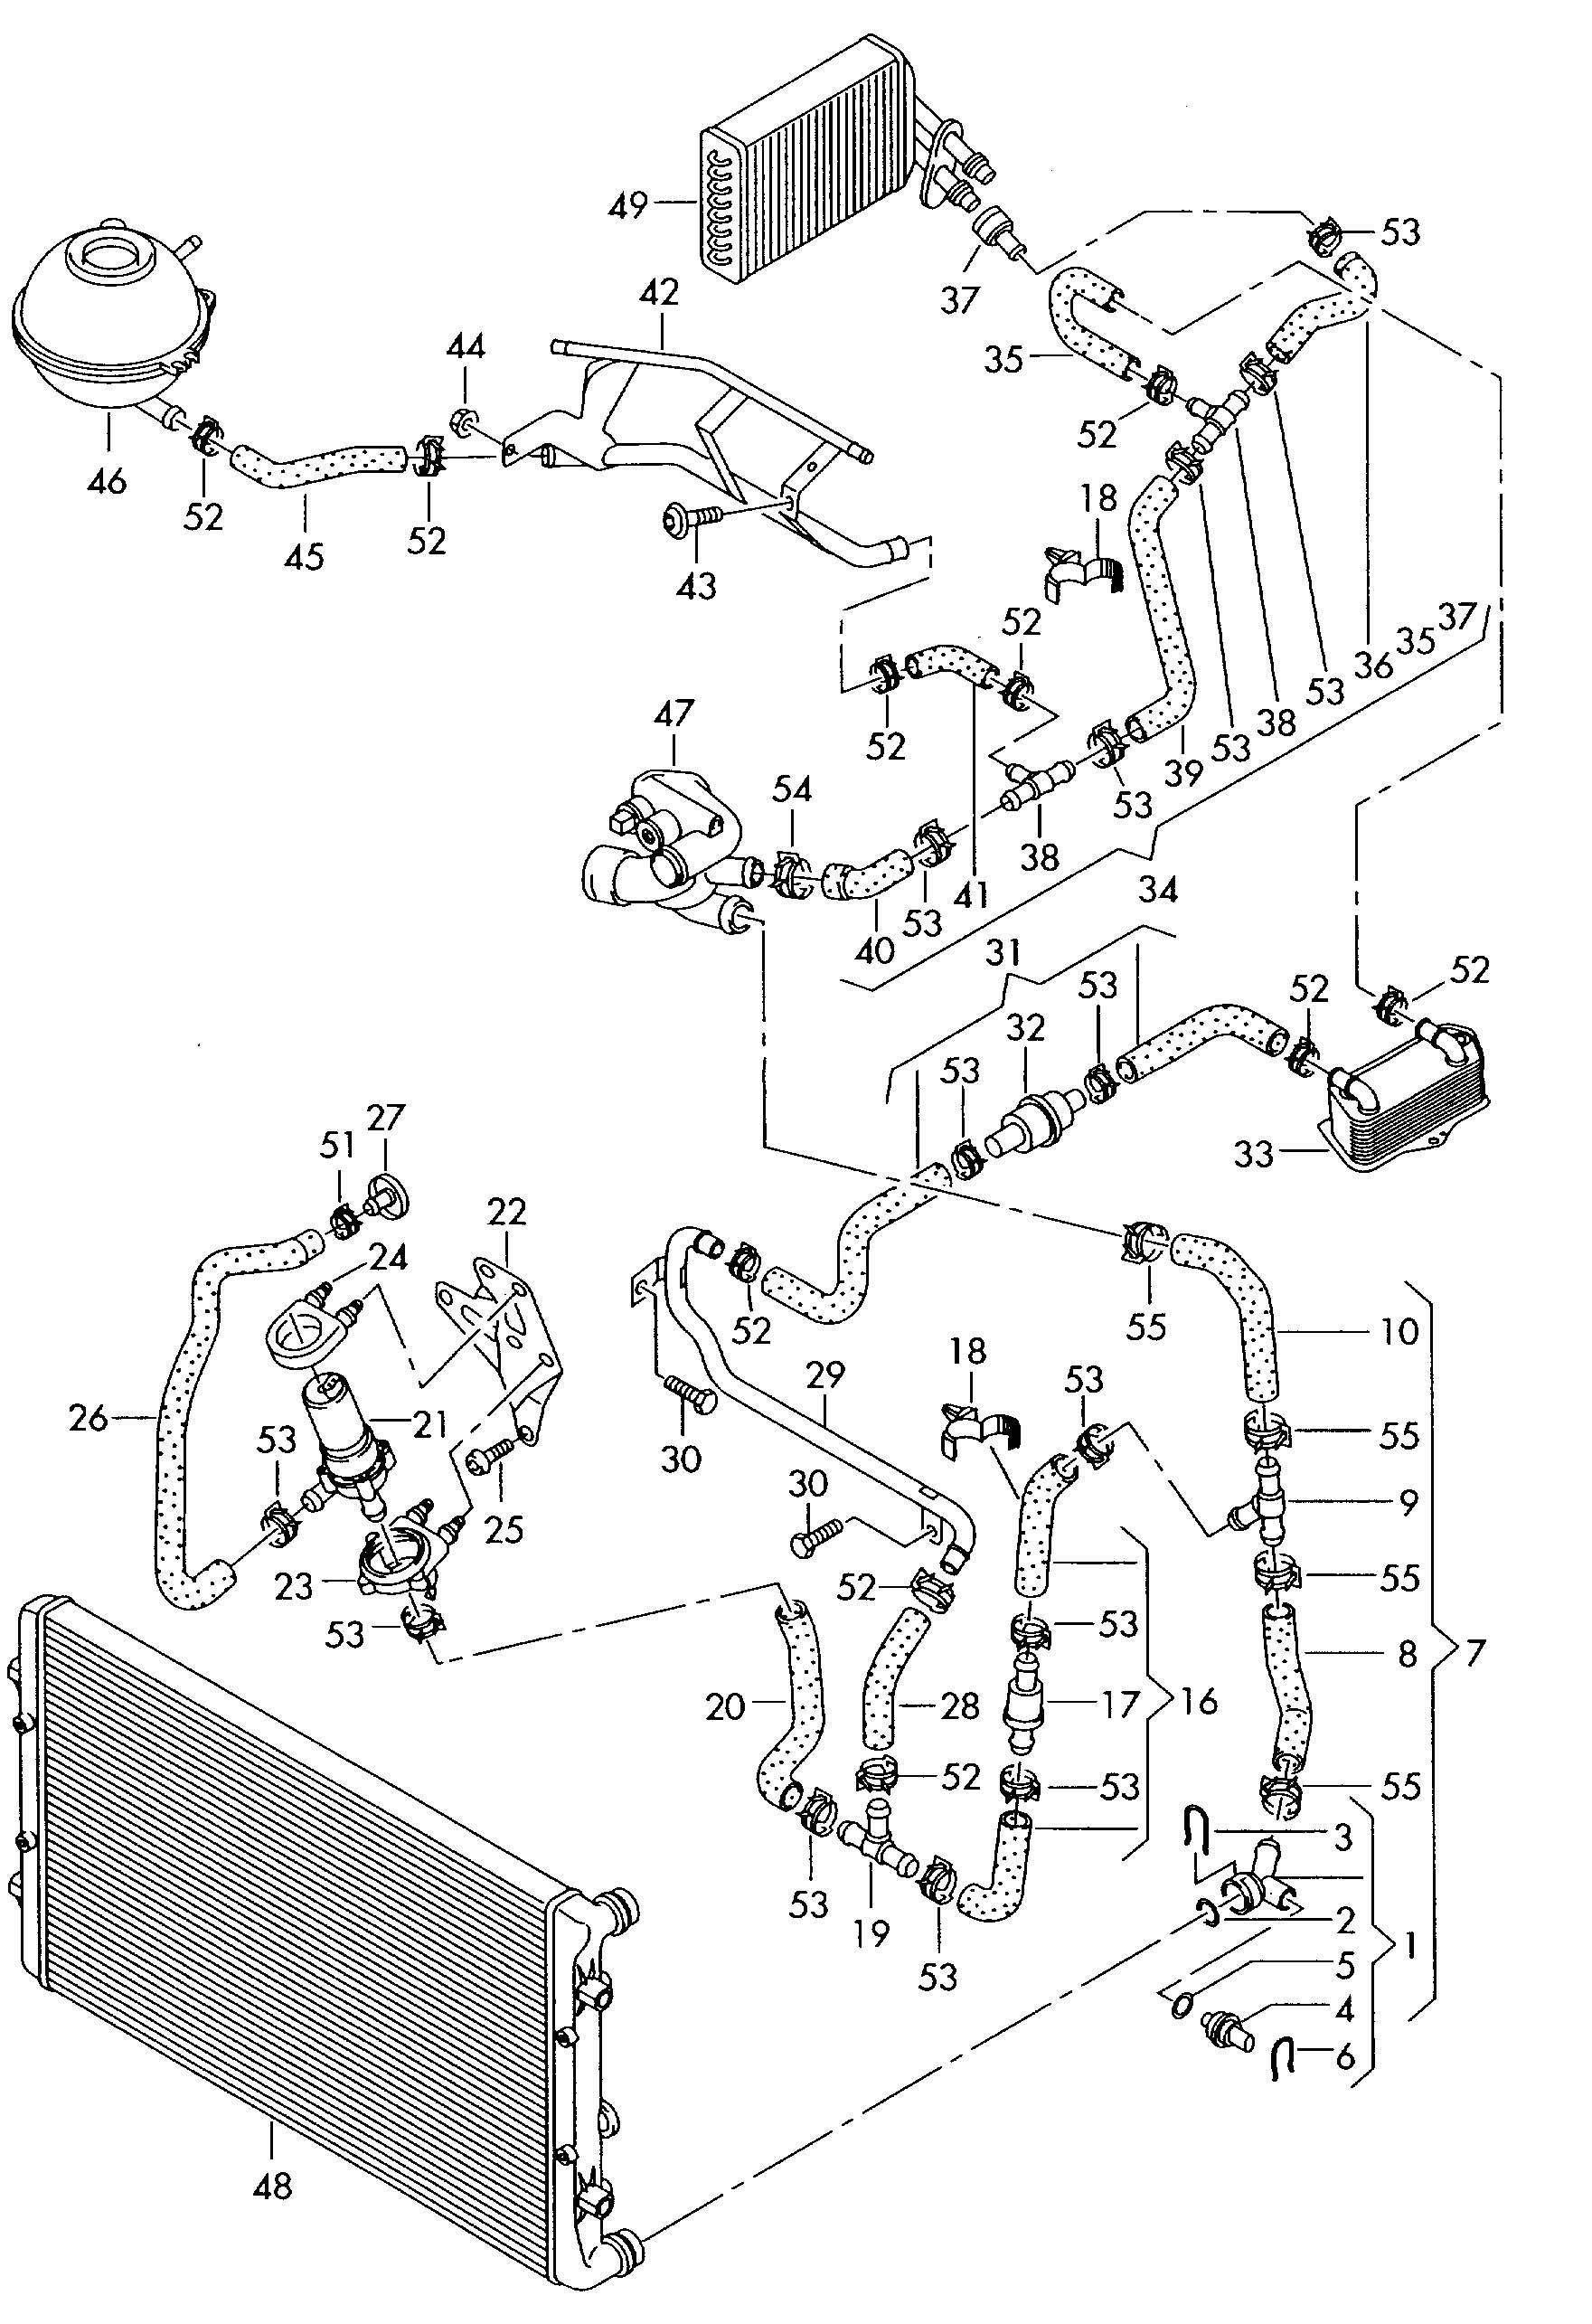 hight resolution of 2001 audi tt engine cooling diagram trusted wiring diagram rh 36 nl schoenheitsbrieftaube de audi tt engine bay diagram audi tt bam engine diagram